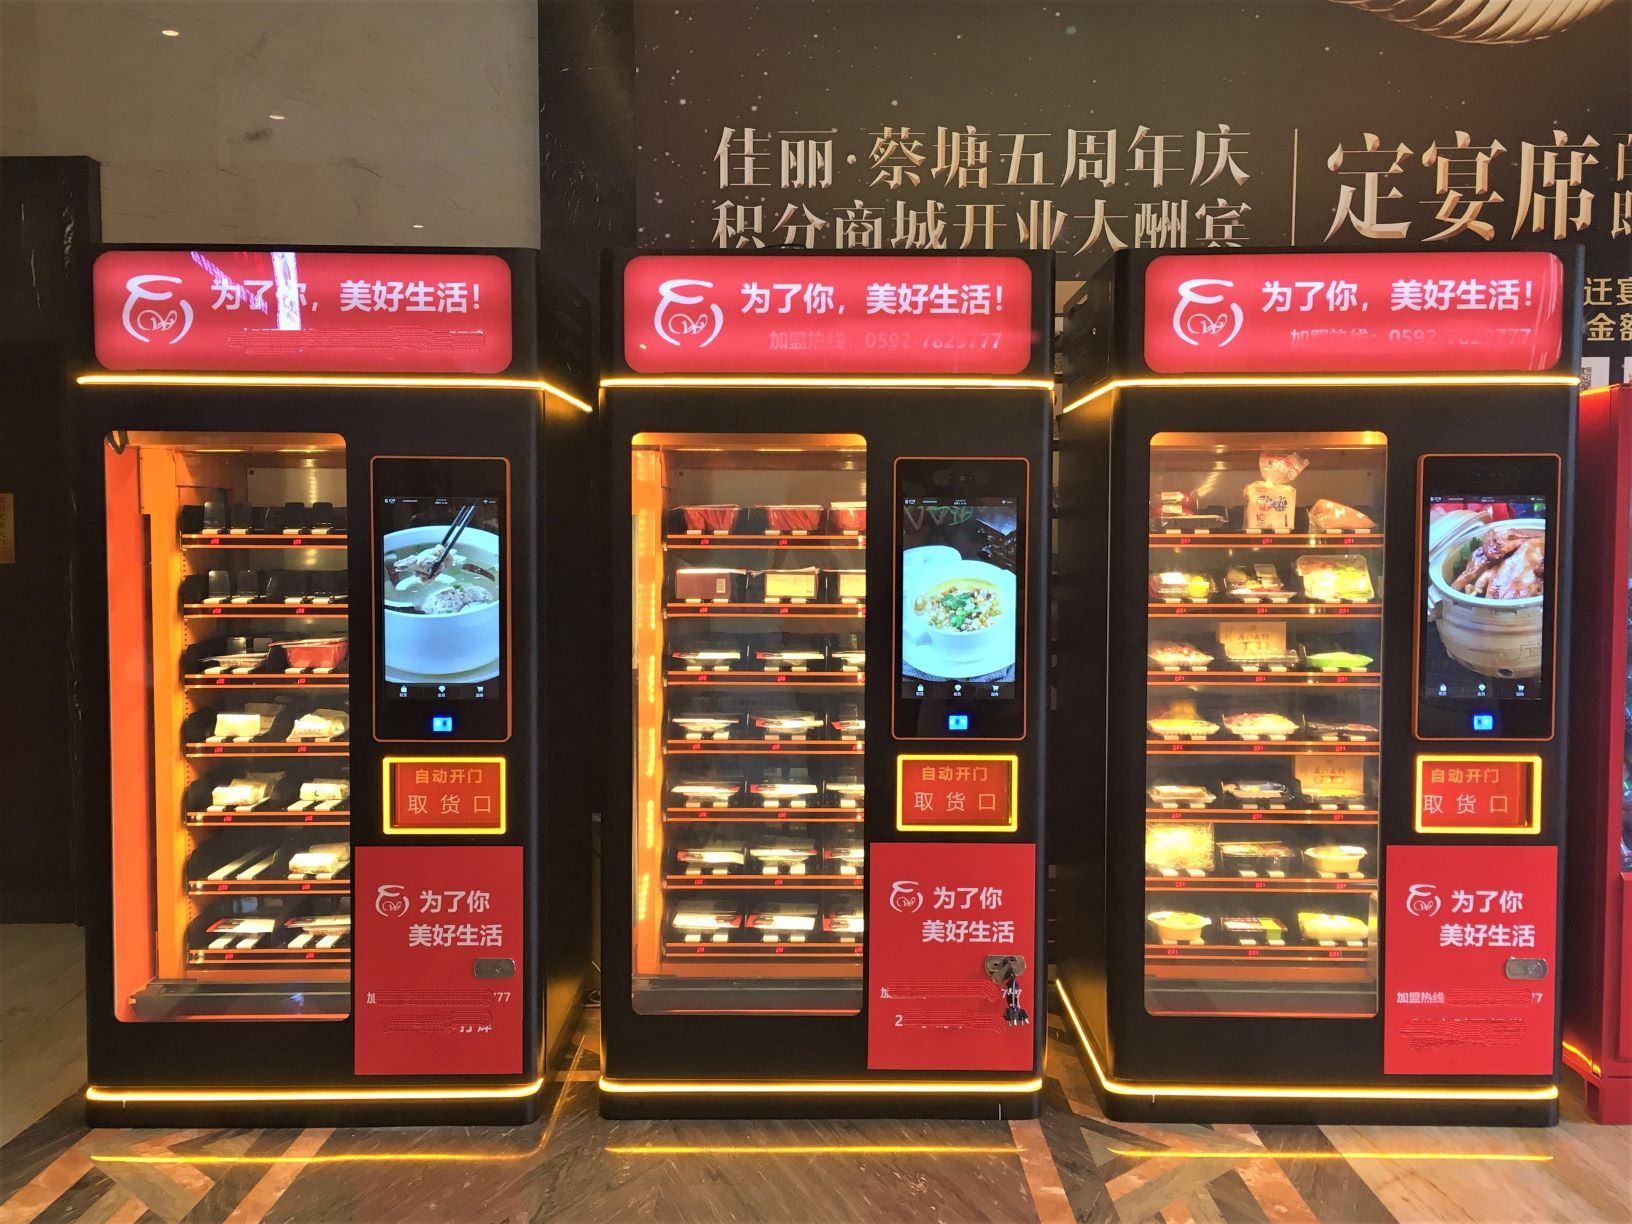 VENDLIFE Food vending machines